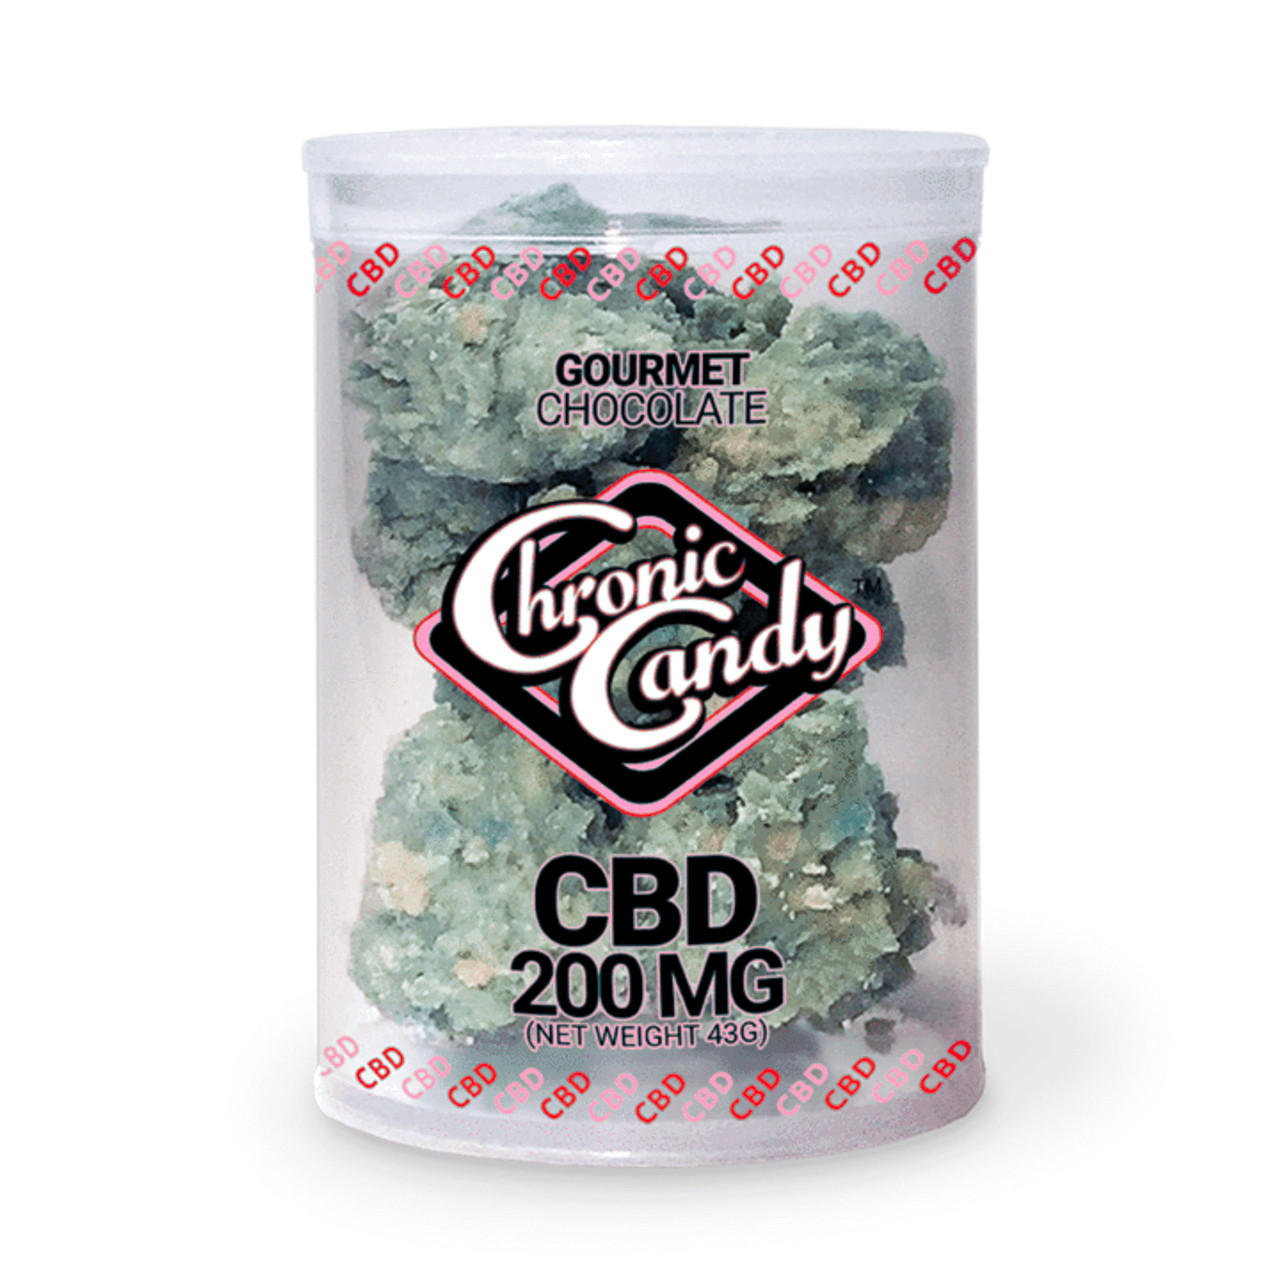 CHRONIC CANDY CBD CHOCOLATES NUGS 200 MG STRAWBERRY SHORTCAKE